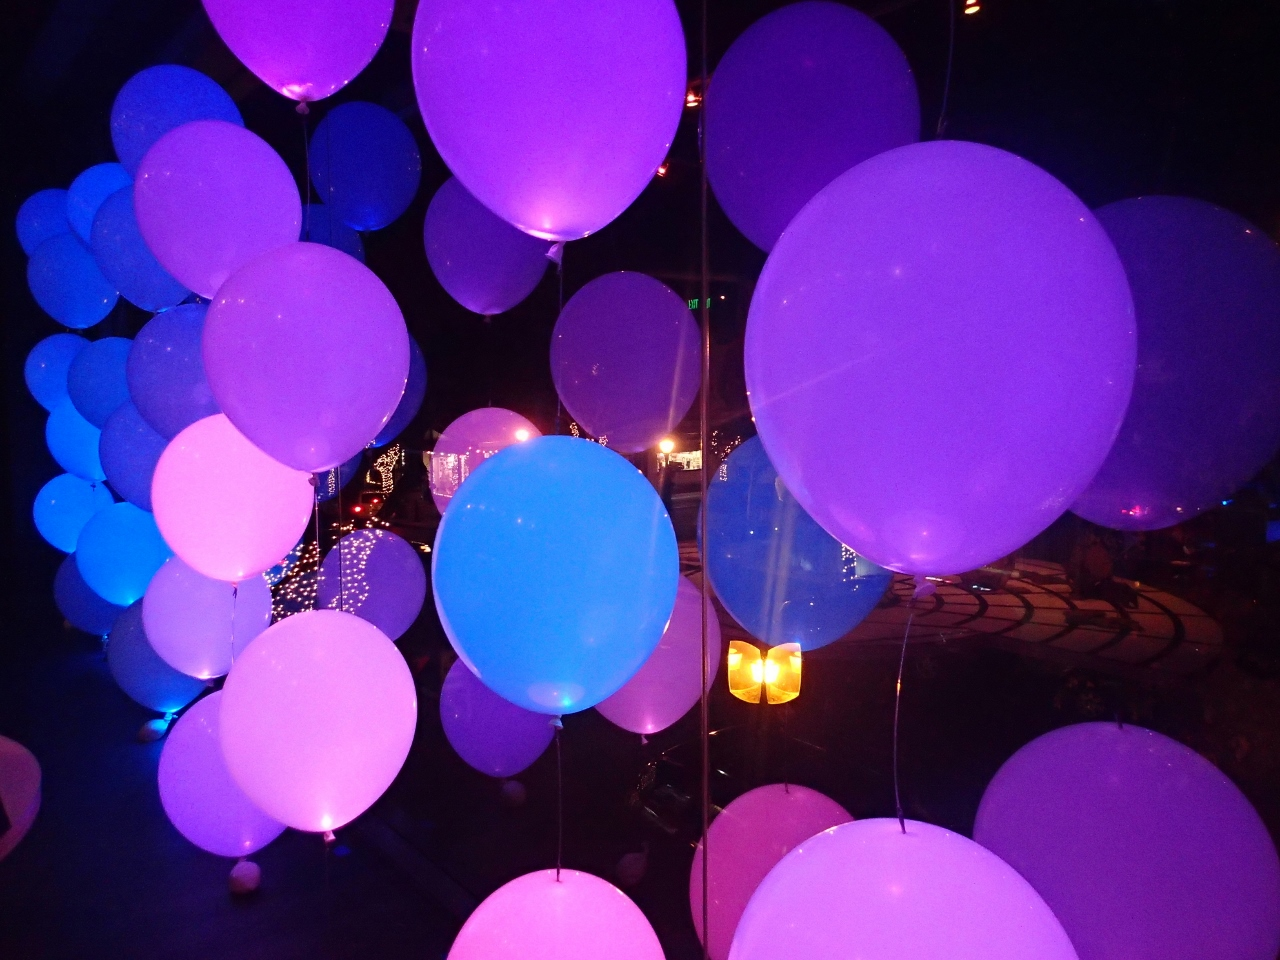 Balloon With Lights